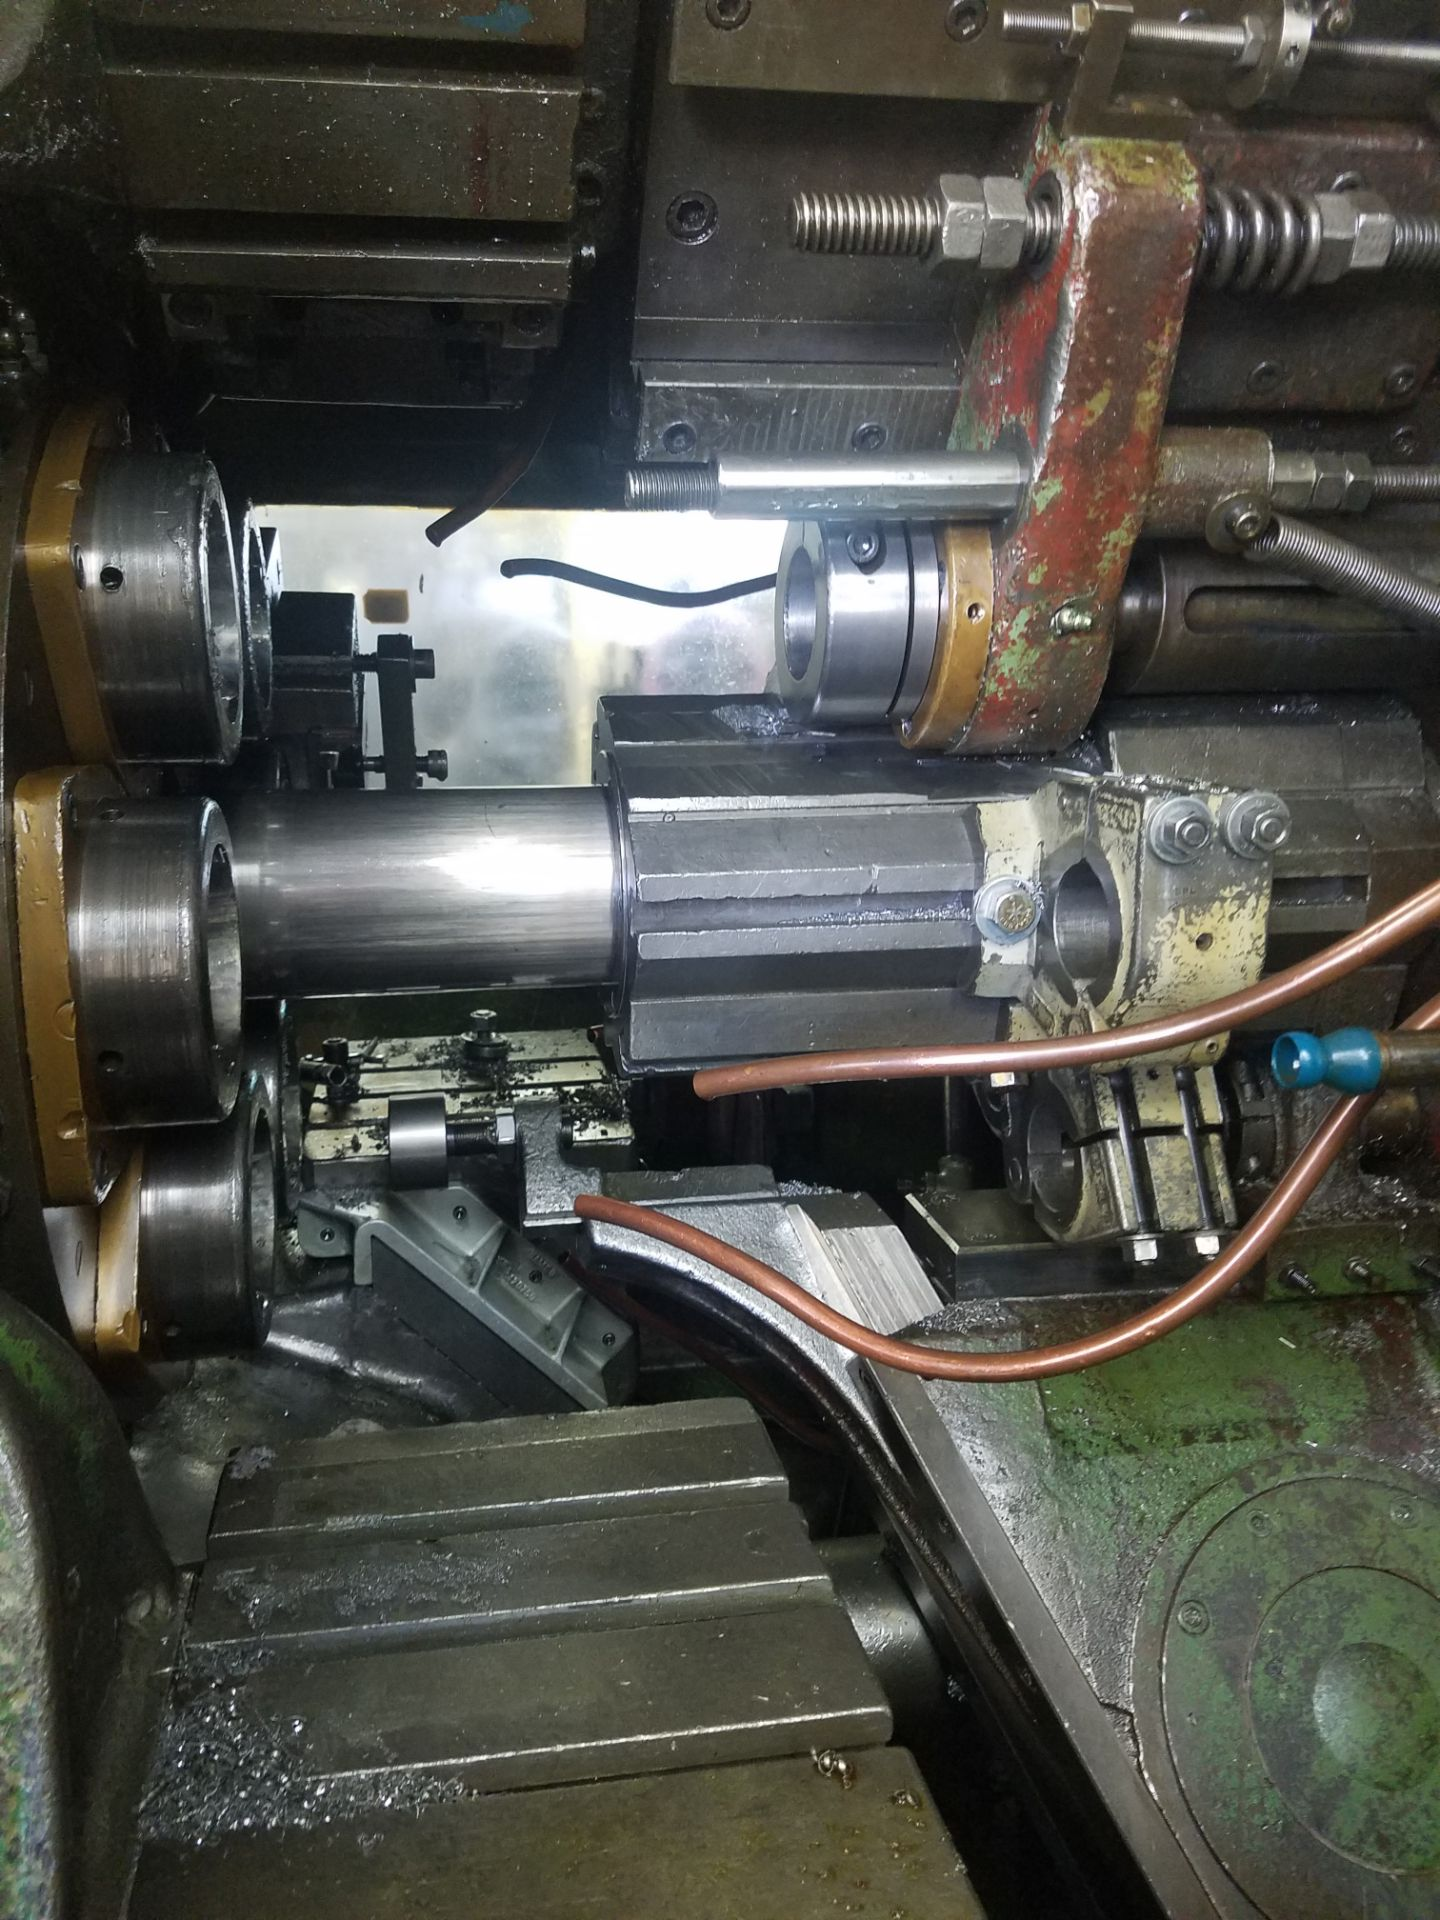 Lotto 22 - Acme Gridley Model RAN6 Automatic Screw Machine, s/n Unknown, 1 In. Capacity, 6 Spindle